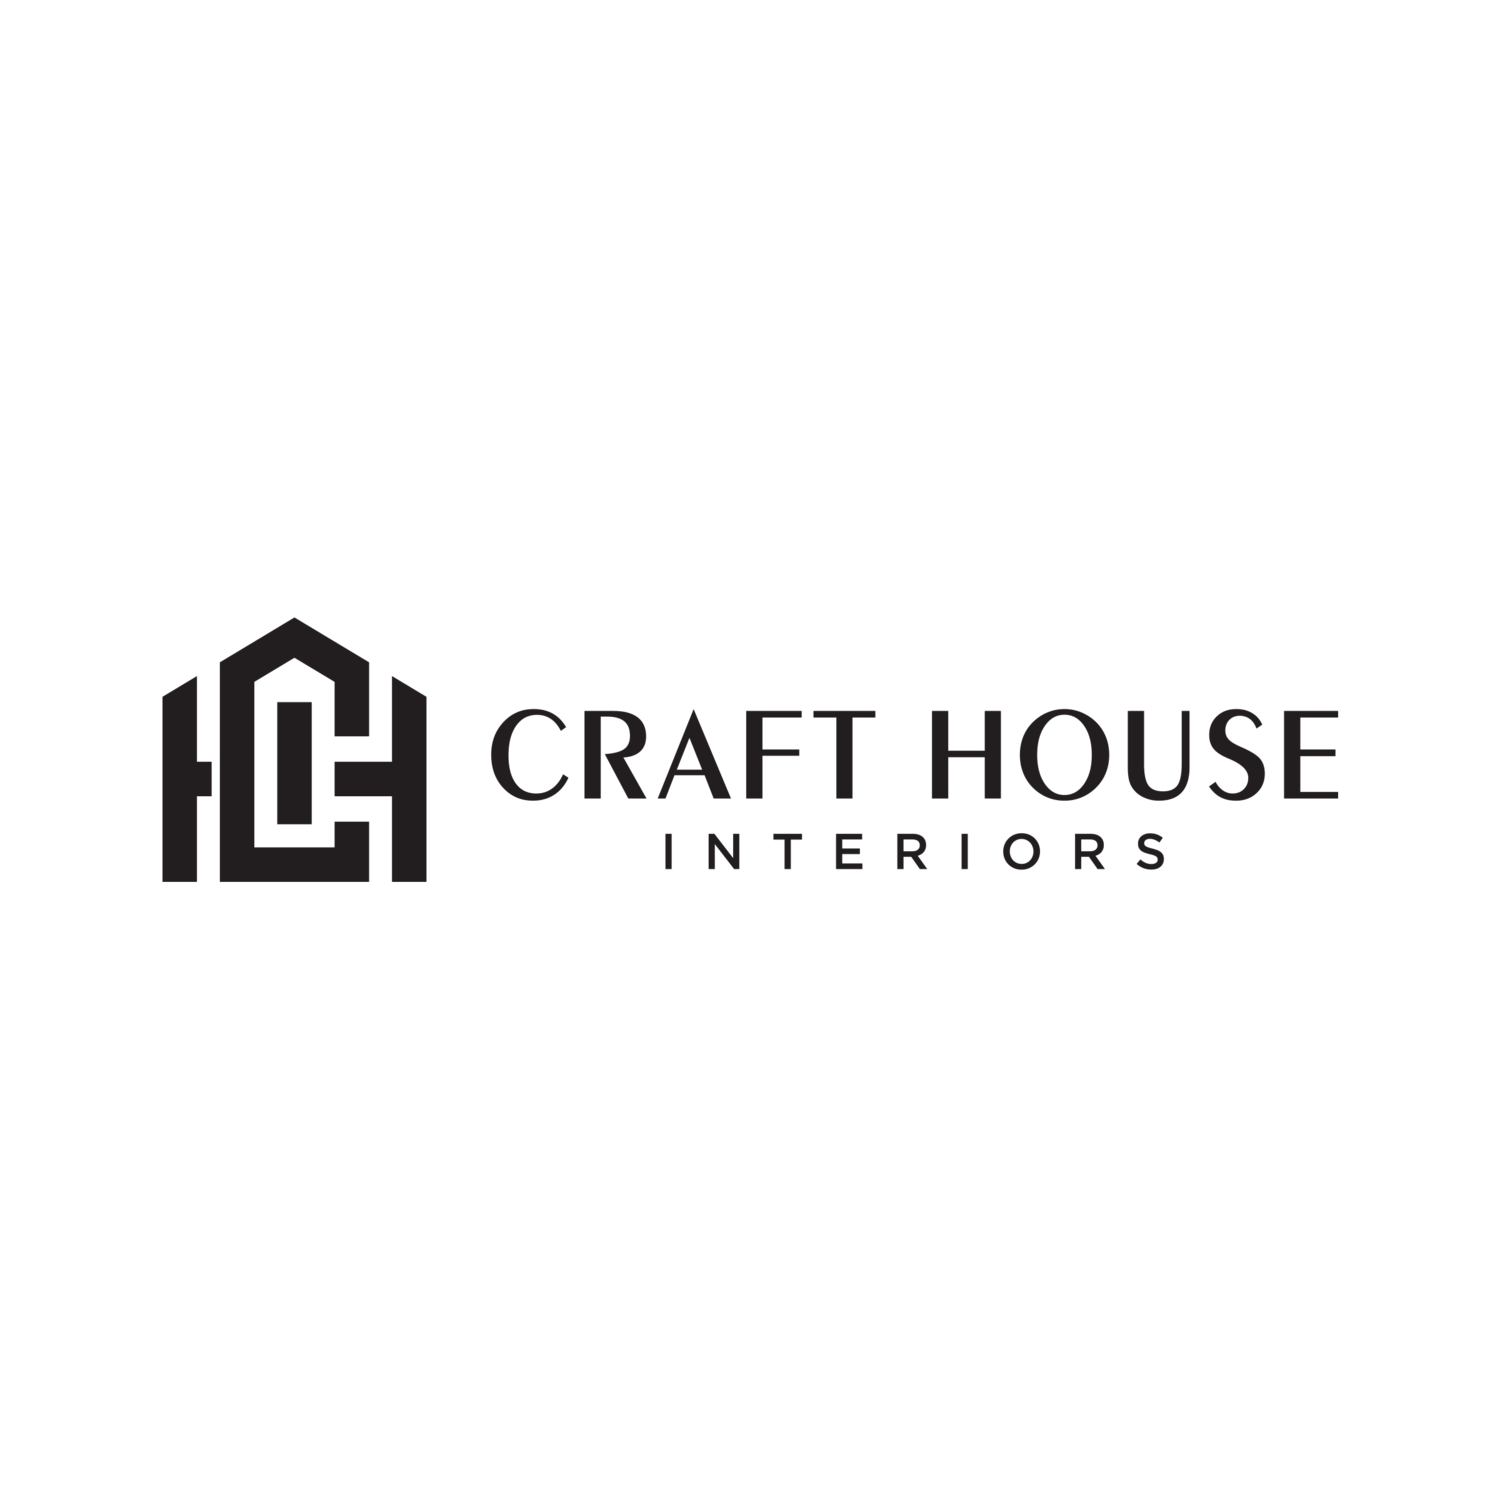 Craft House Interiors